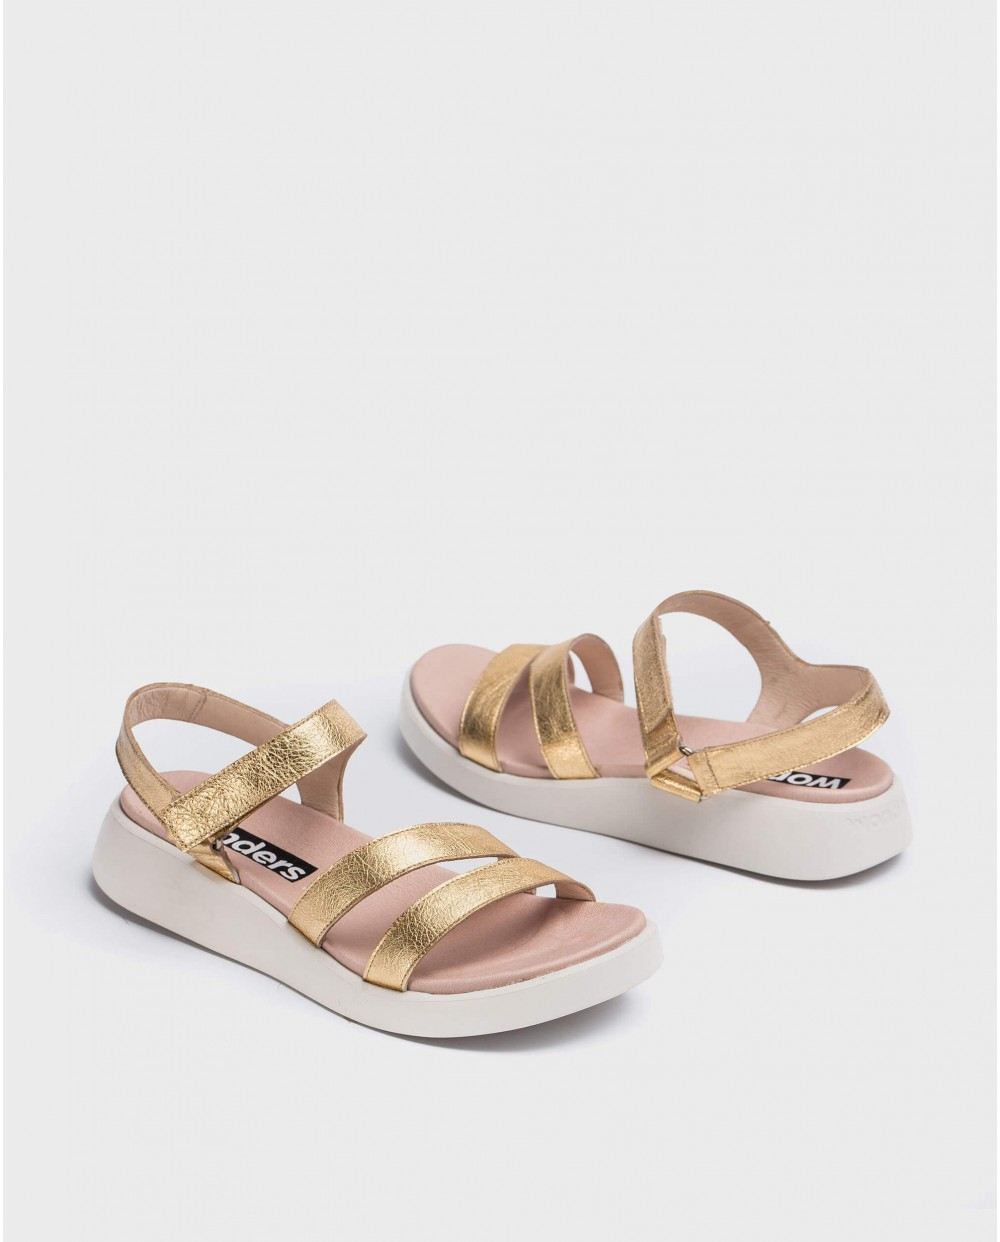 Wonders-Sandals-Leather sandal with strap